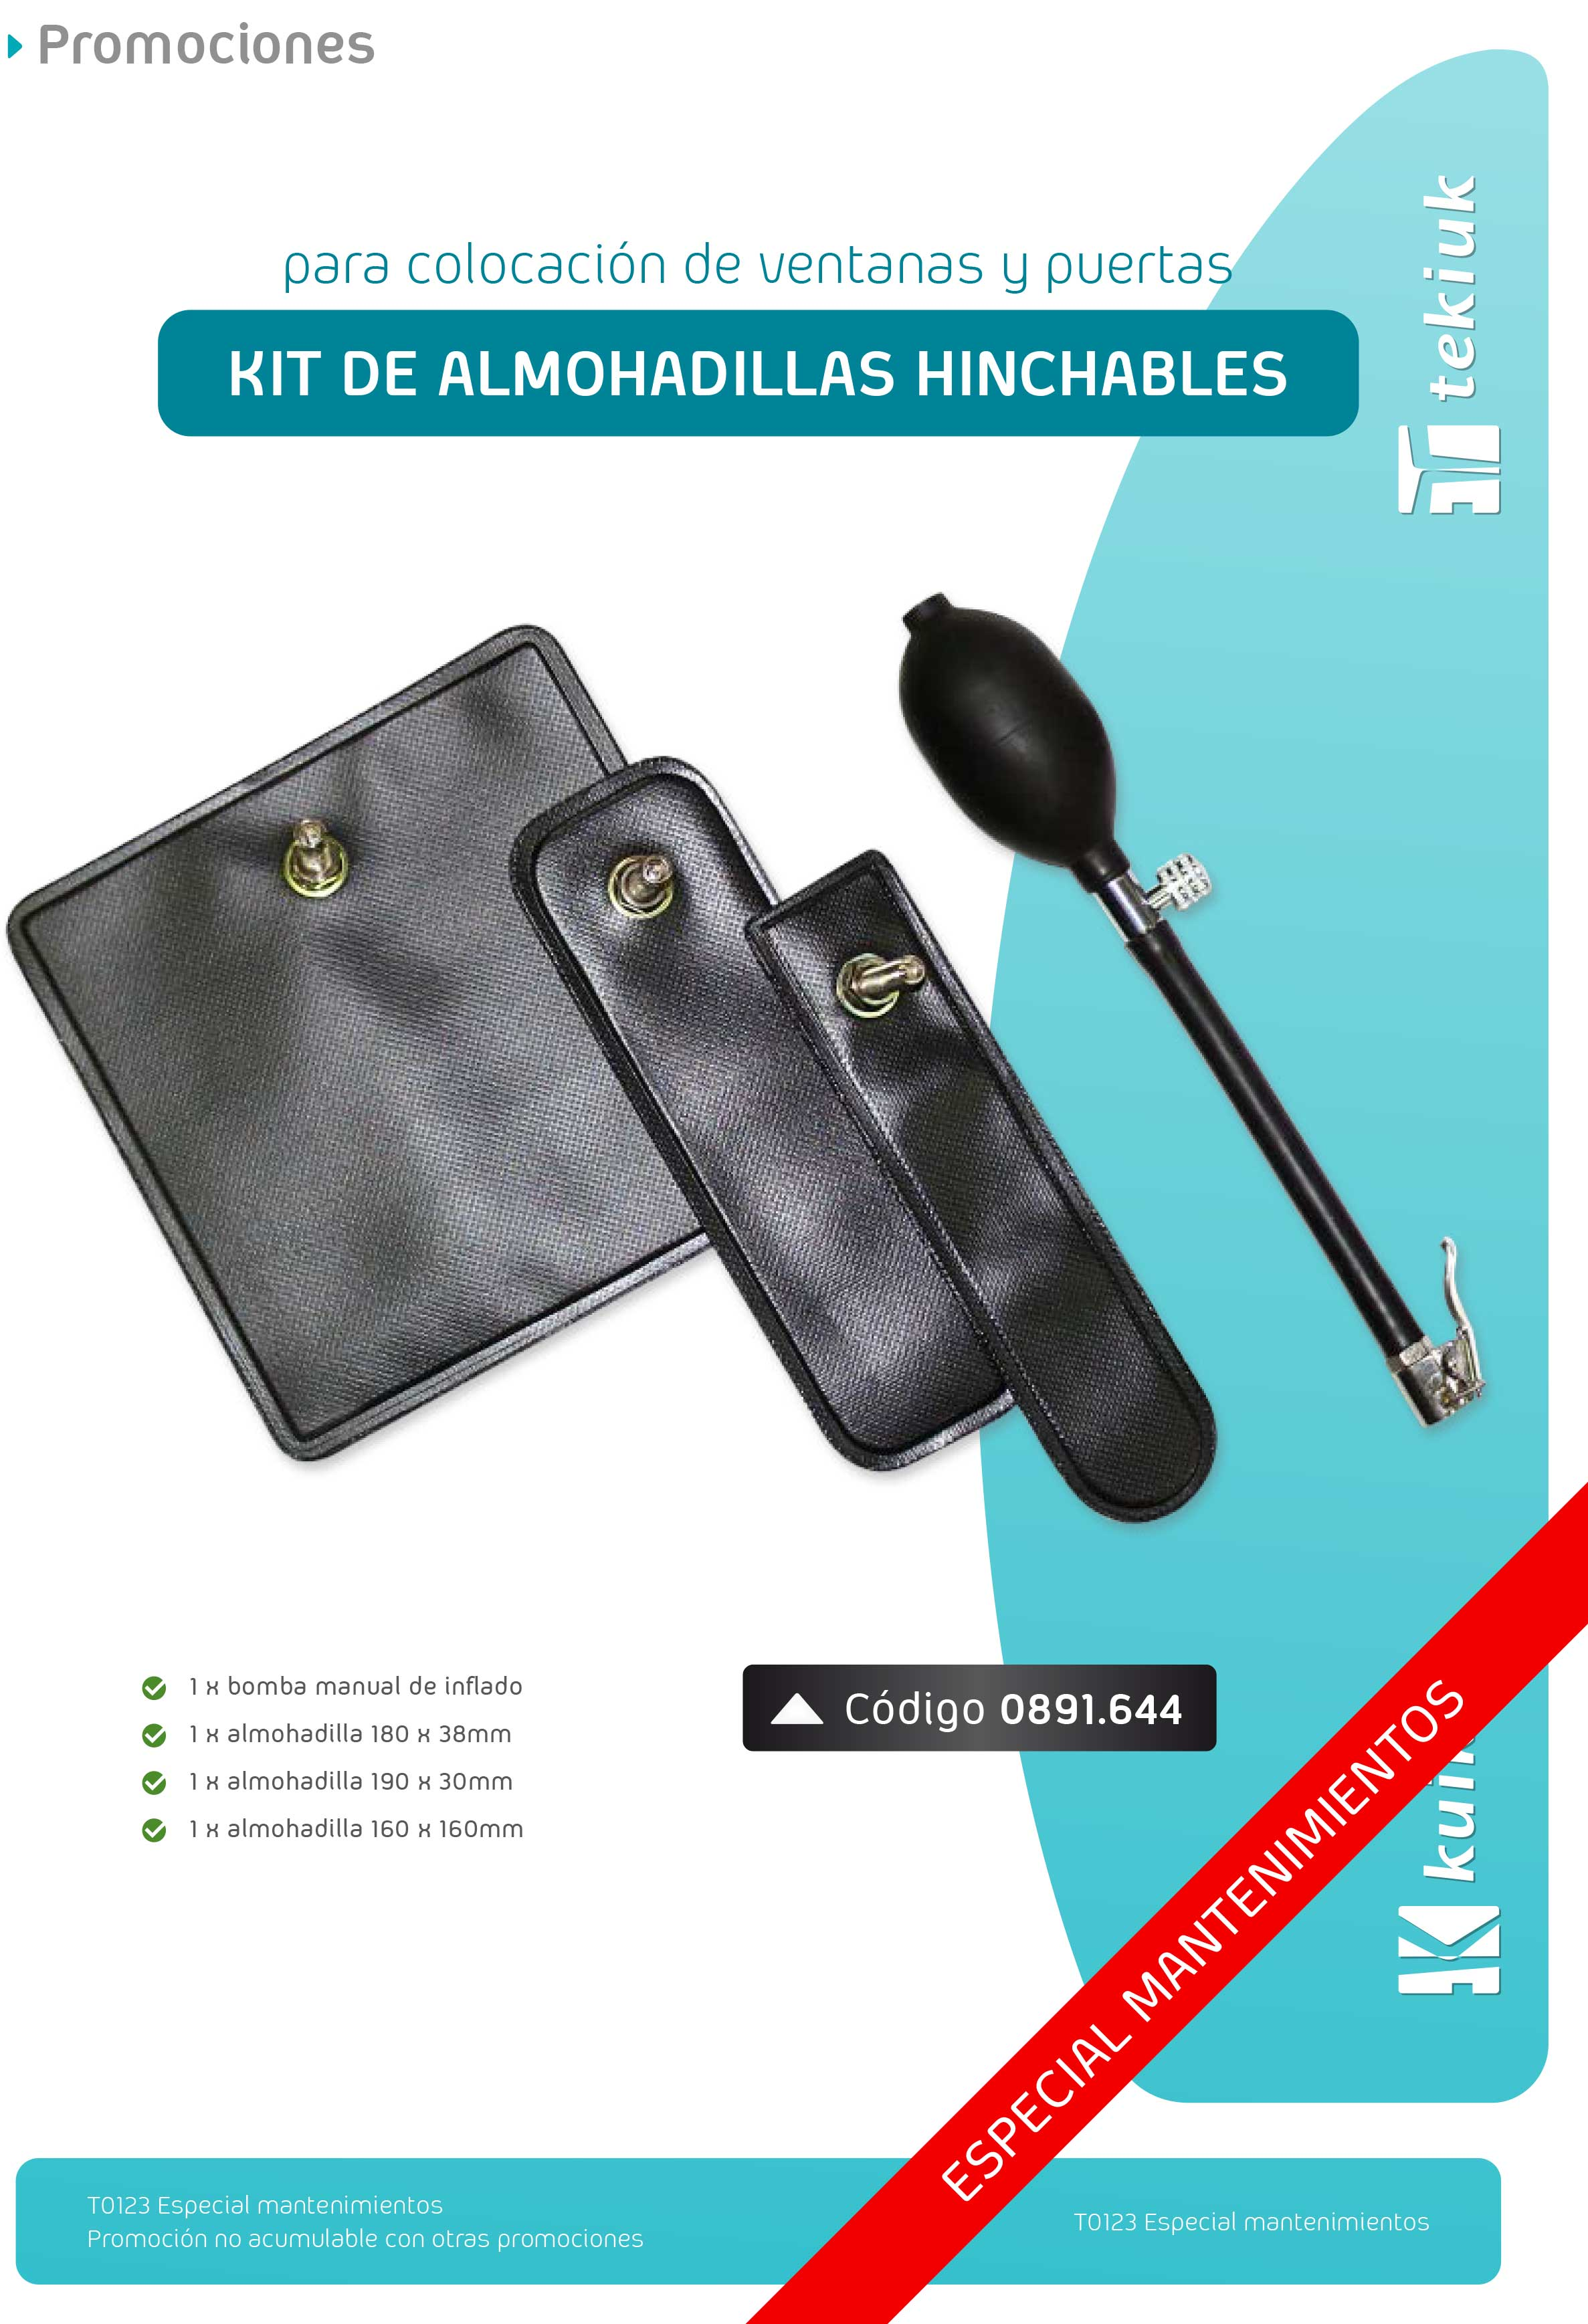 T0123 Kit de almohadillas hinchables